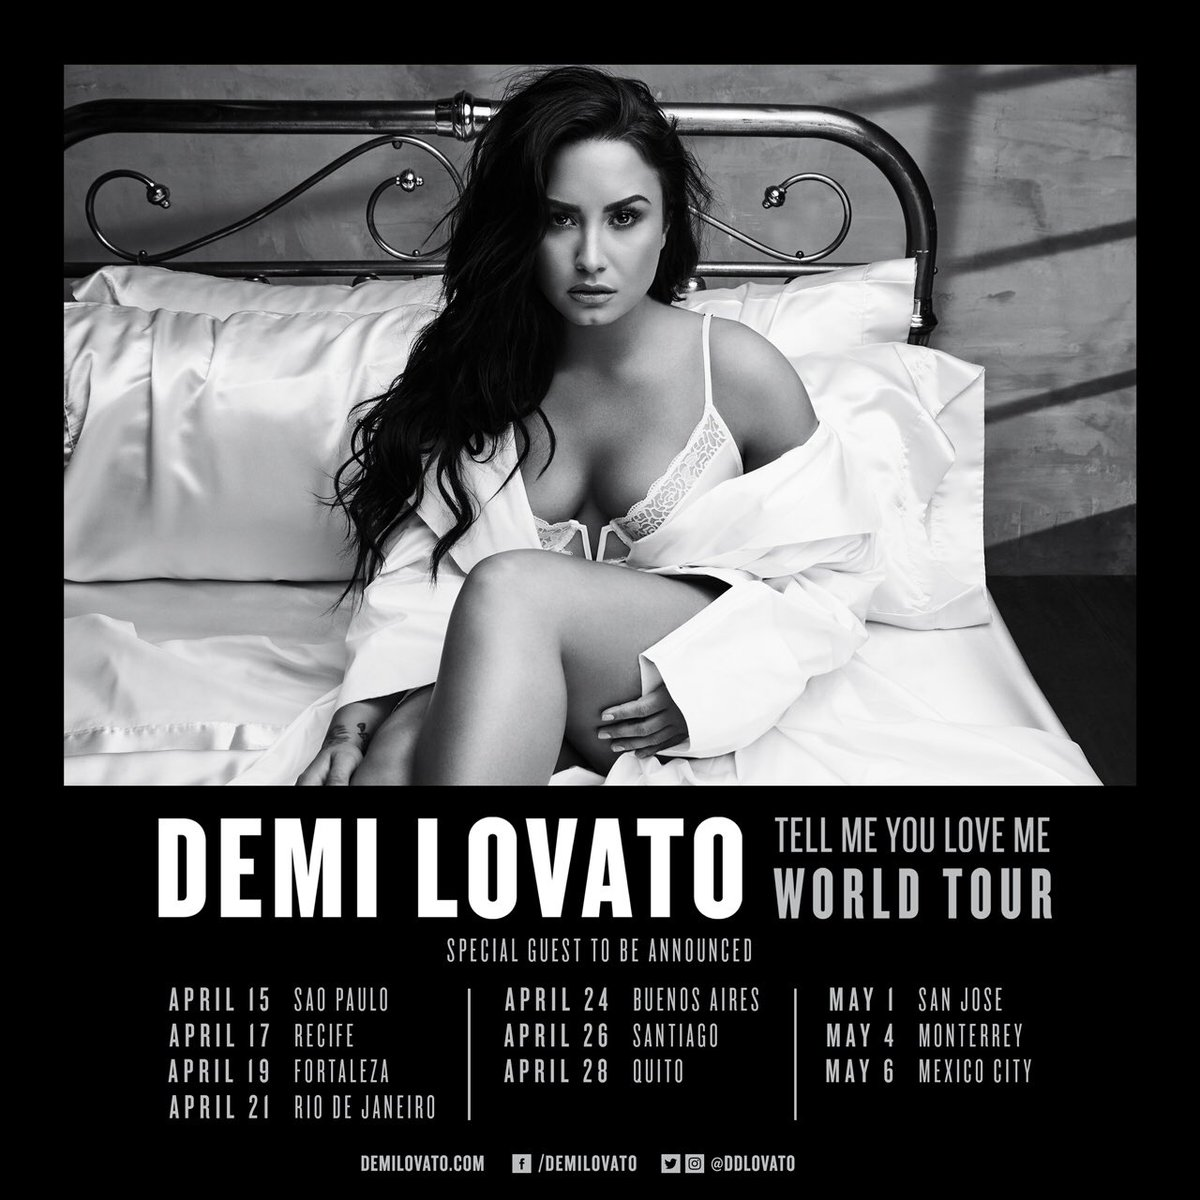 Mexico ???????? It's your turn!! Tickets for the #TellMeYouLoveMeTour are on sale now ❤️ https://t.co/FdRYQe0I9Y https://t.co/tUSigBlcBW